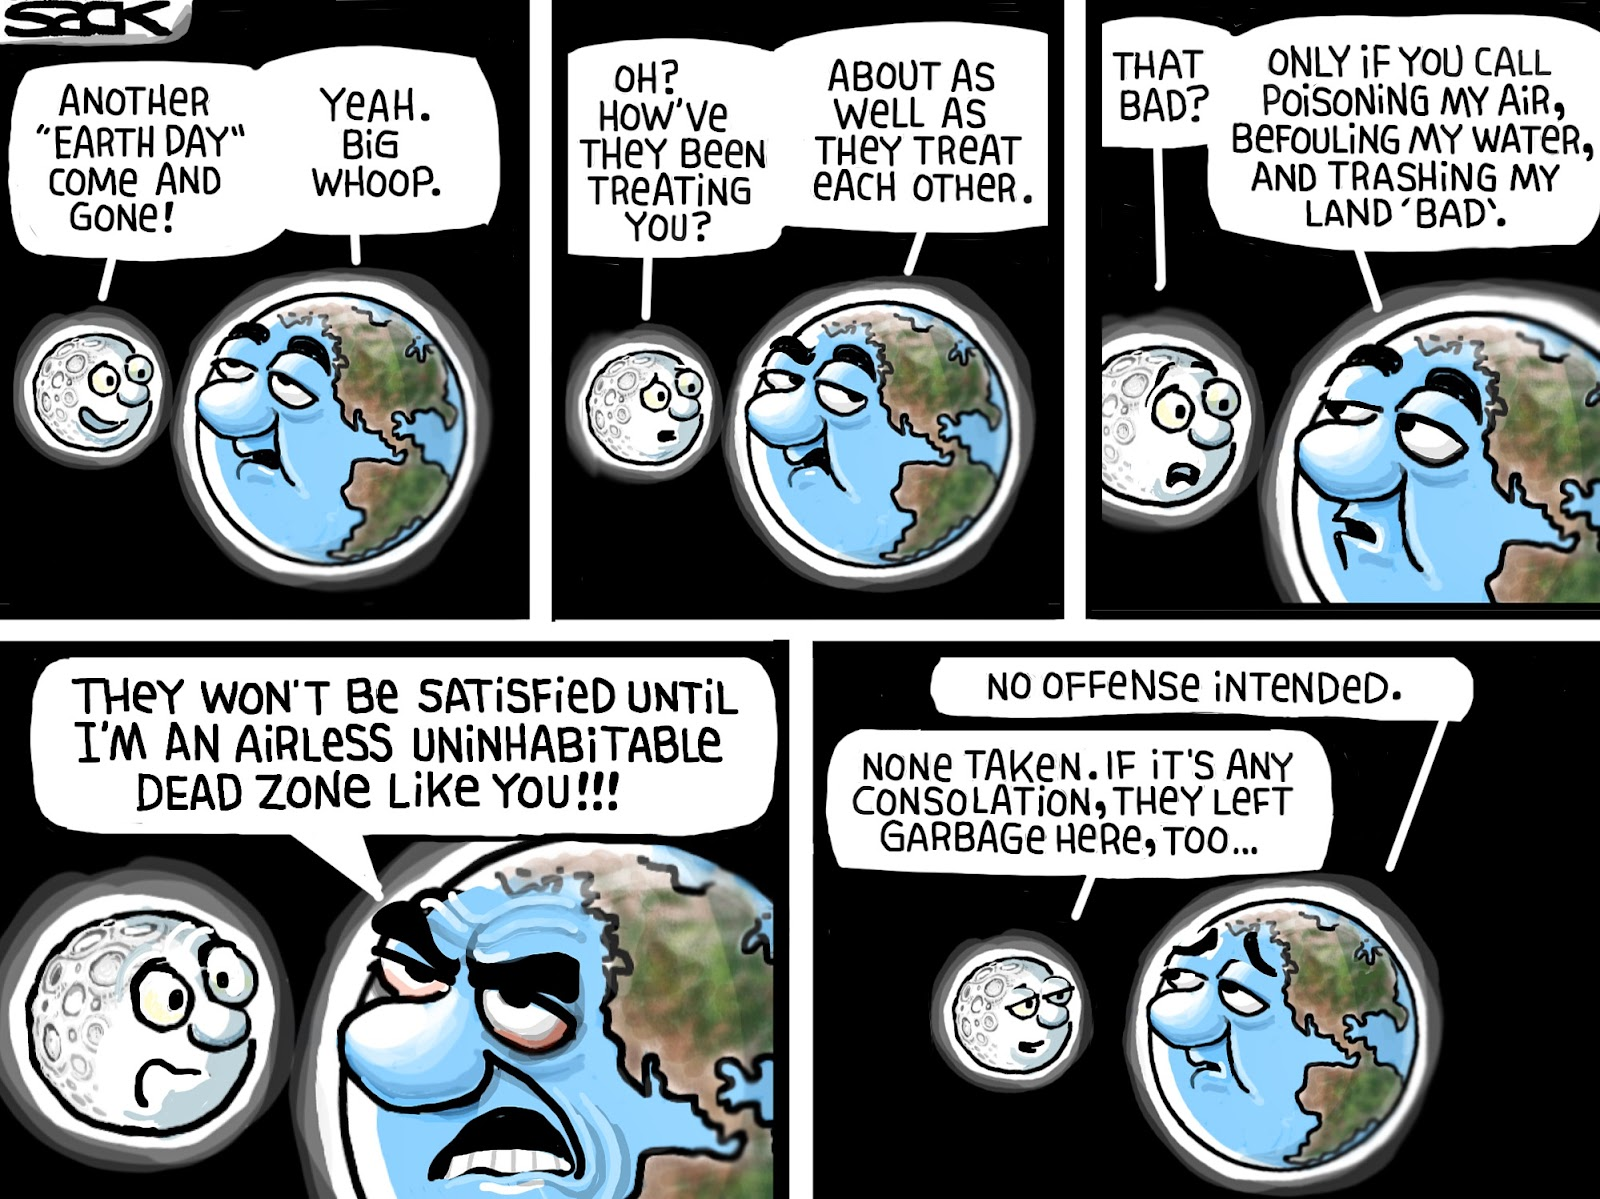 Steve Sack: Earth Day 2014.